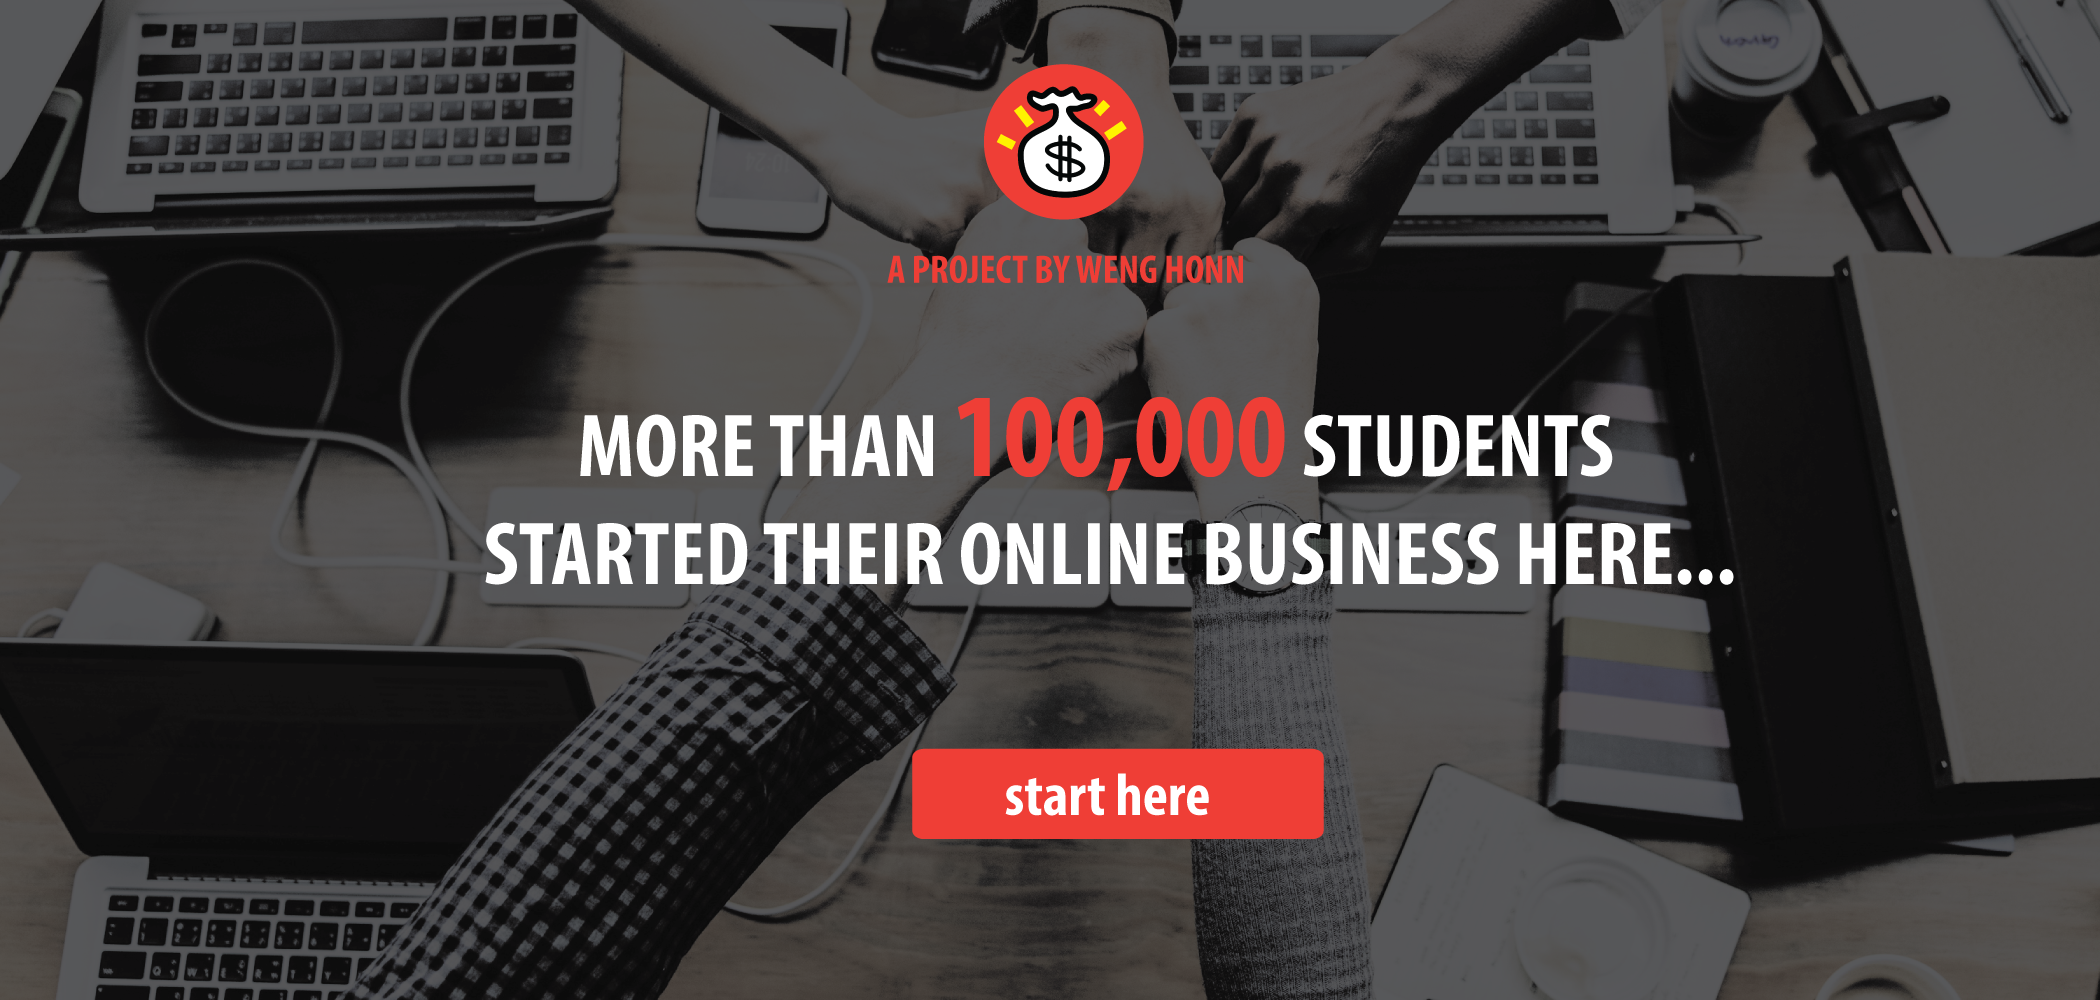 HOME BASED ONLINE BUSINESS START UP IN MALAYSIA